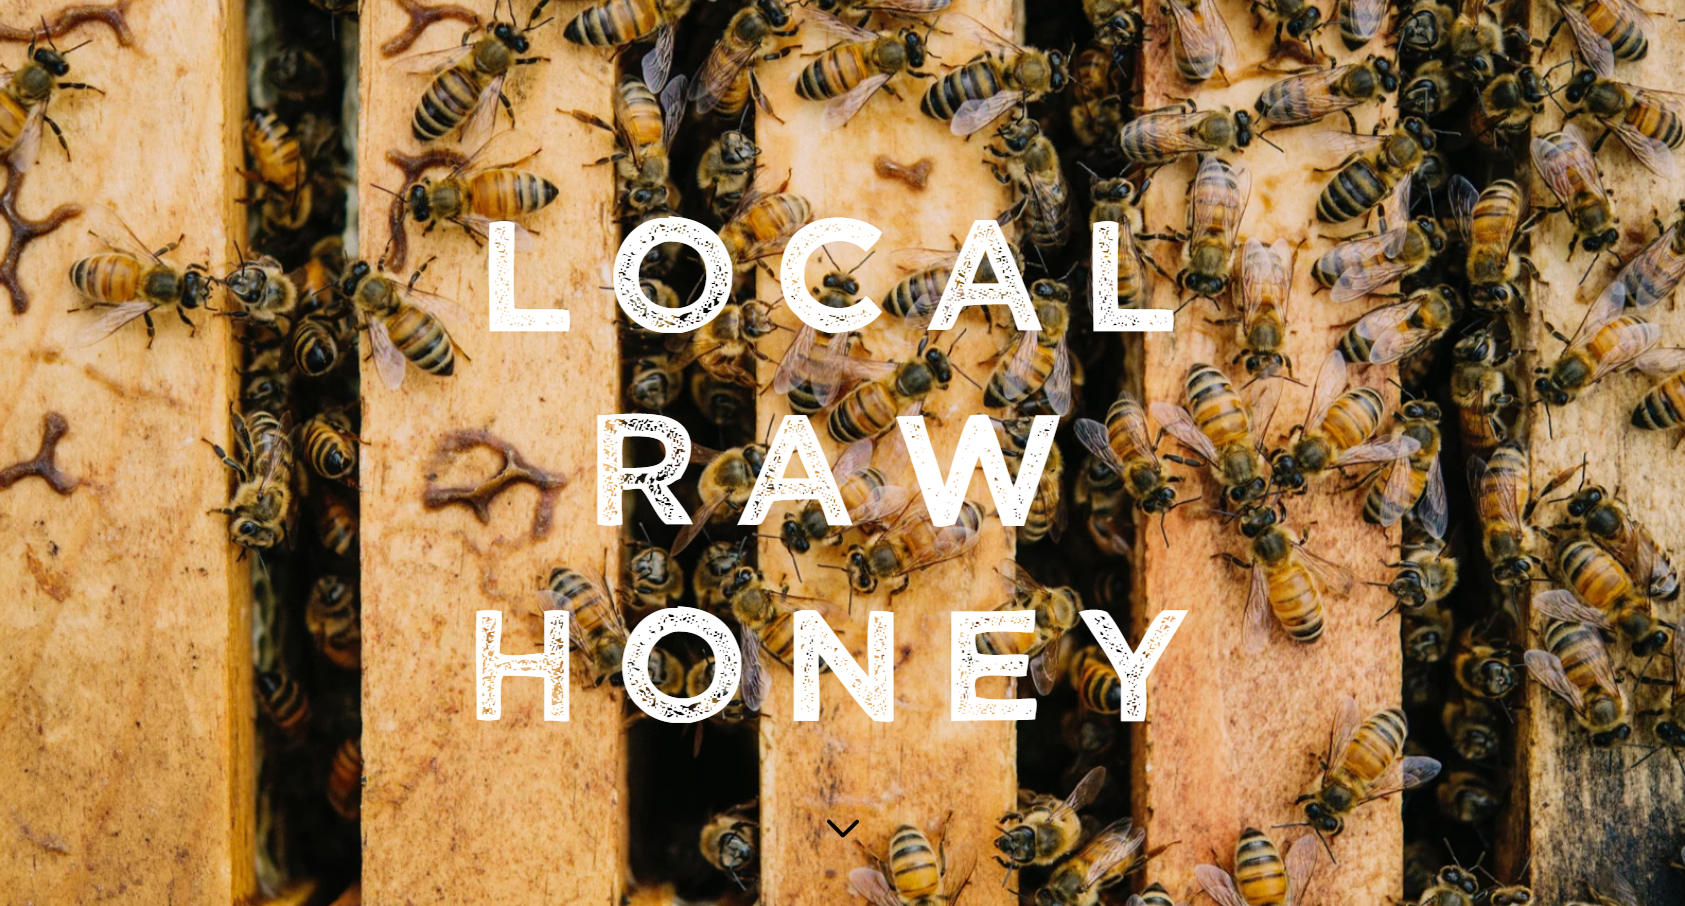 Local Raw Hawaii Honey